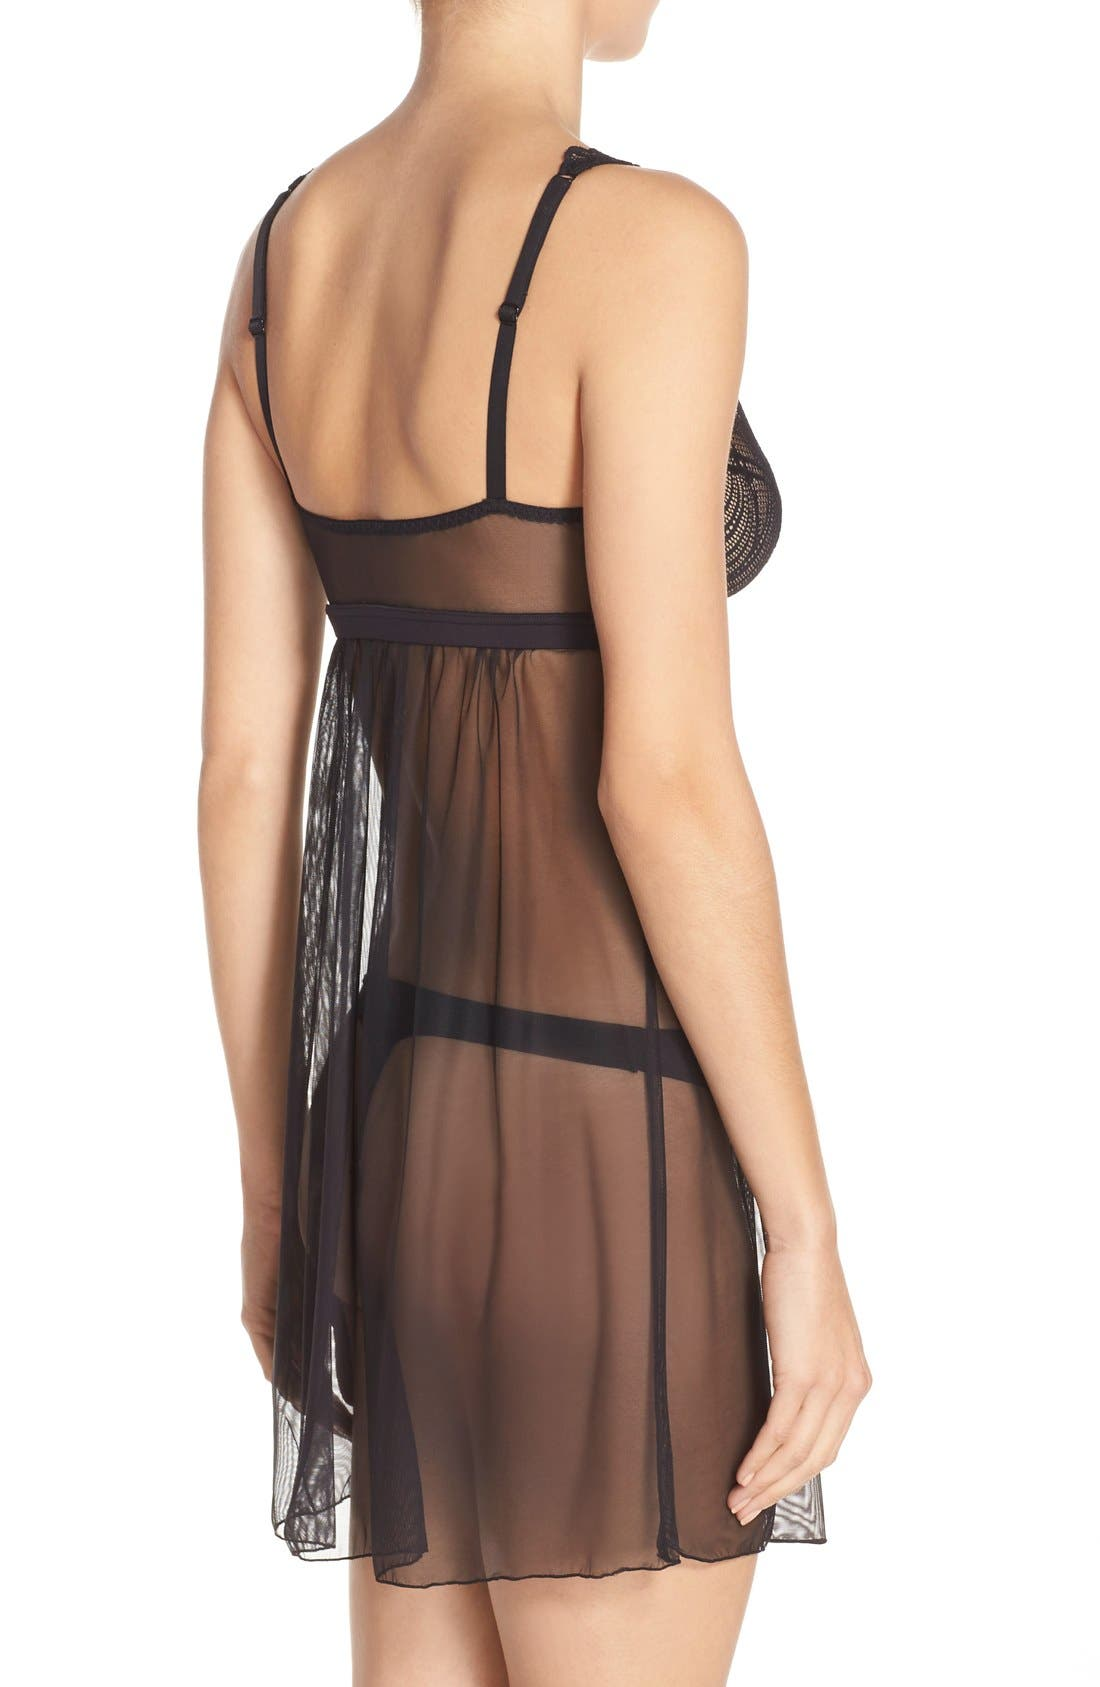 'Minoa' Babydoll Chemise,                             Alternate thumbnail 2, color,                             001